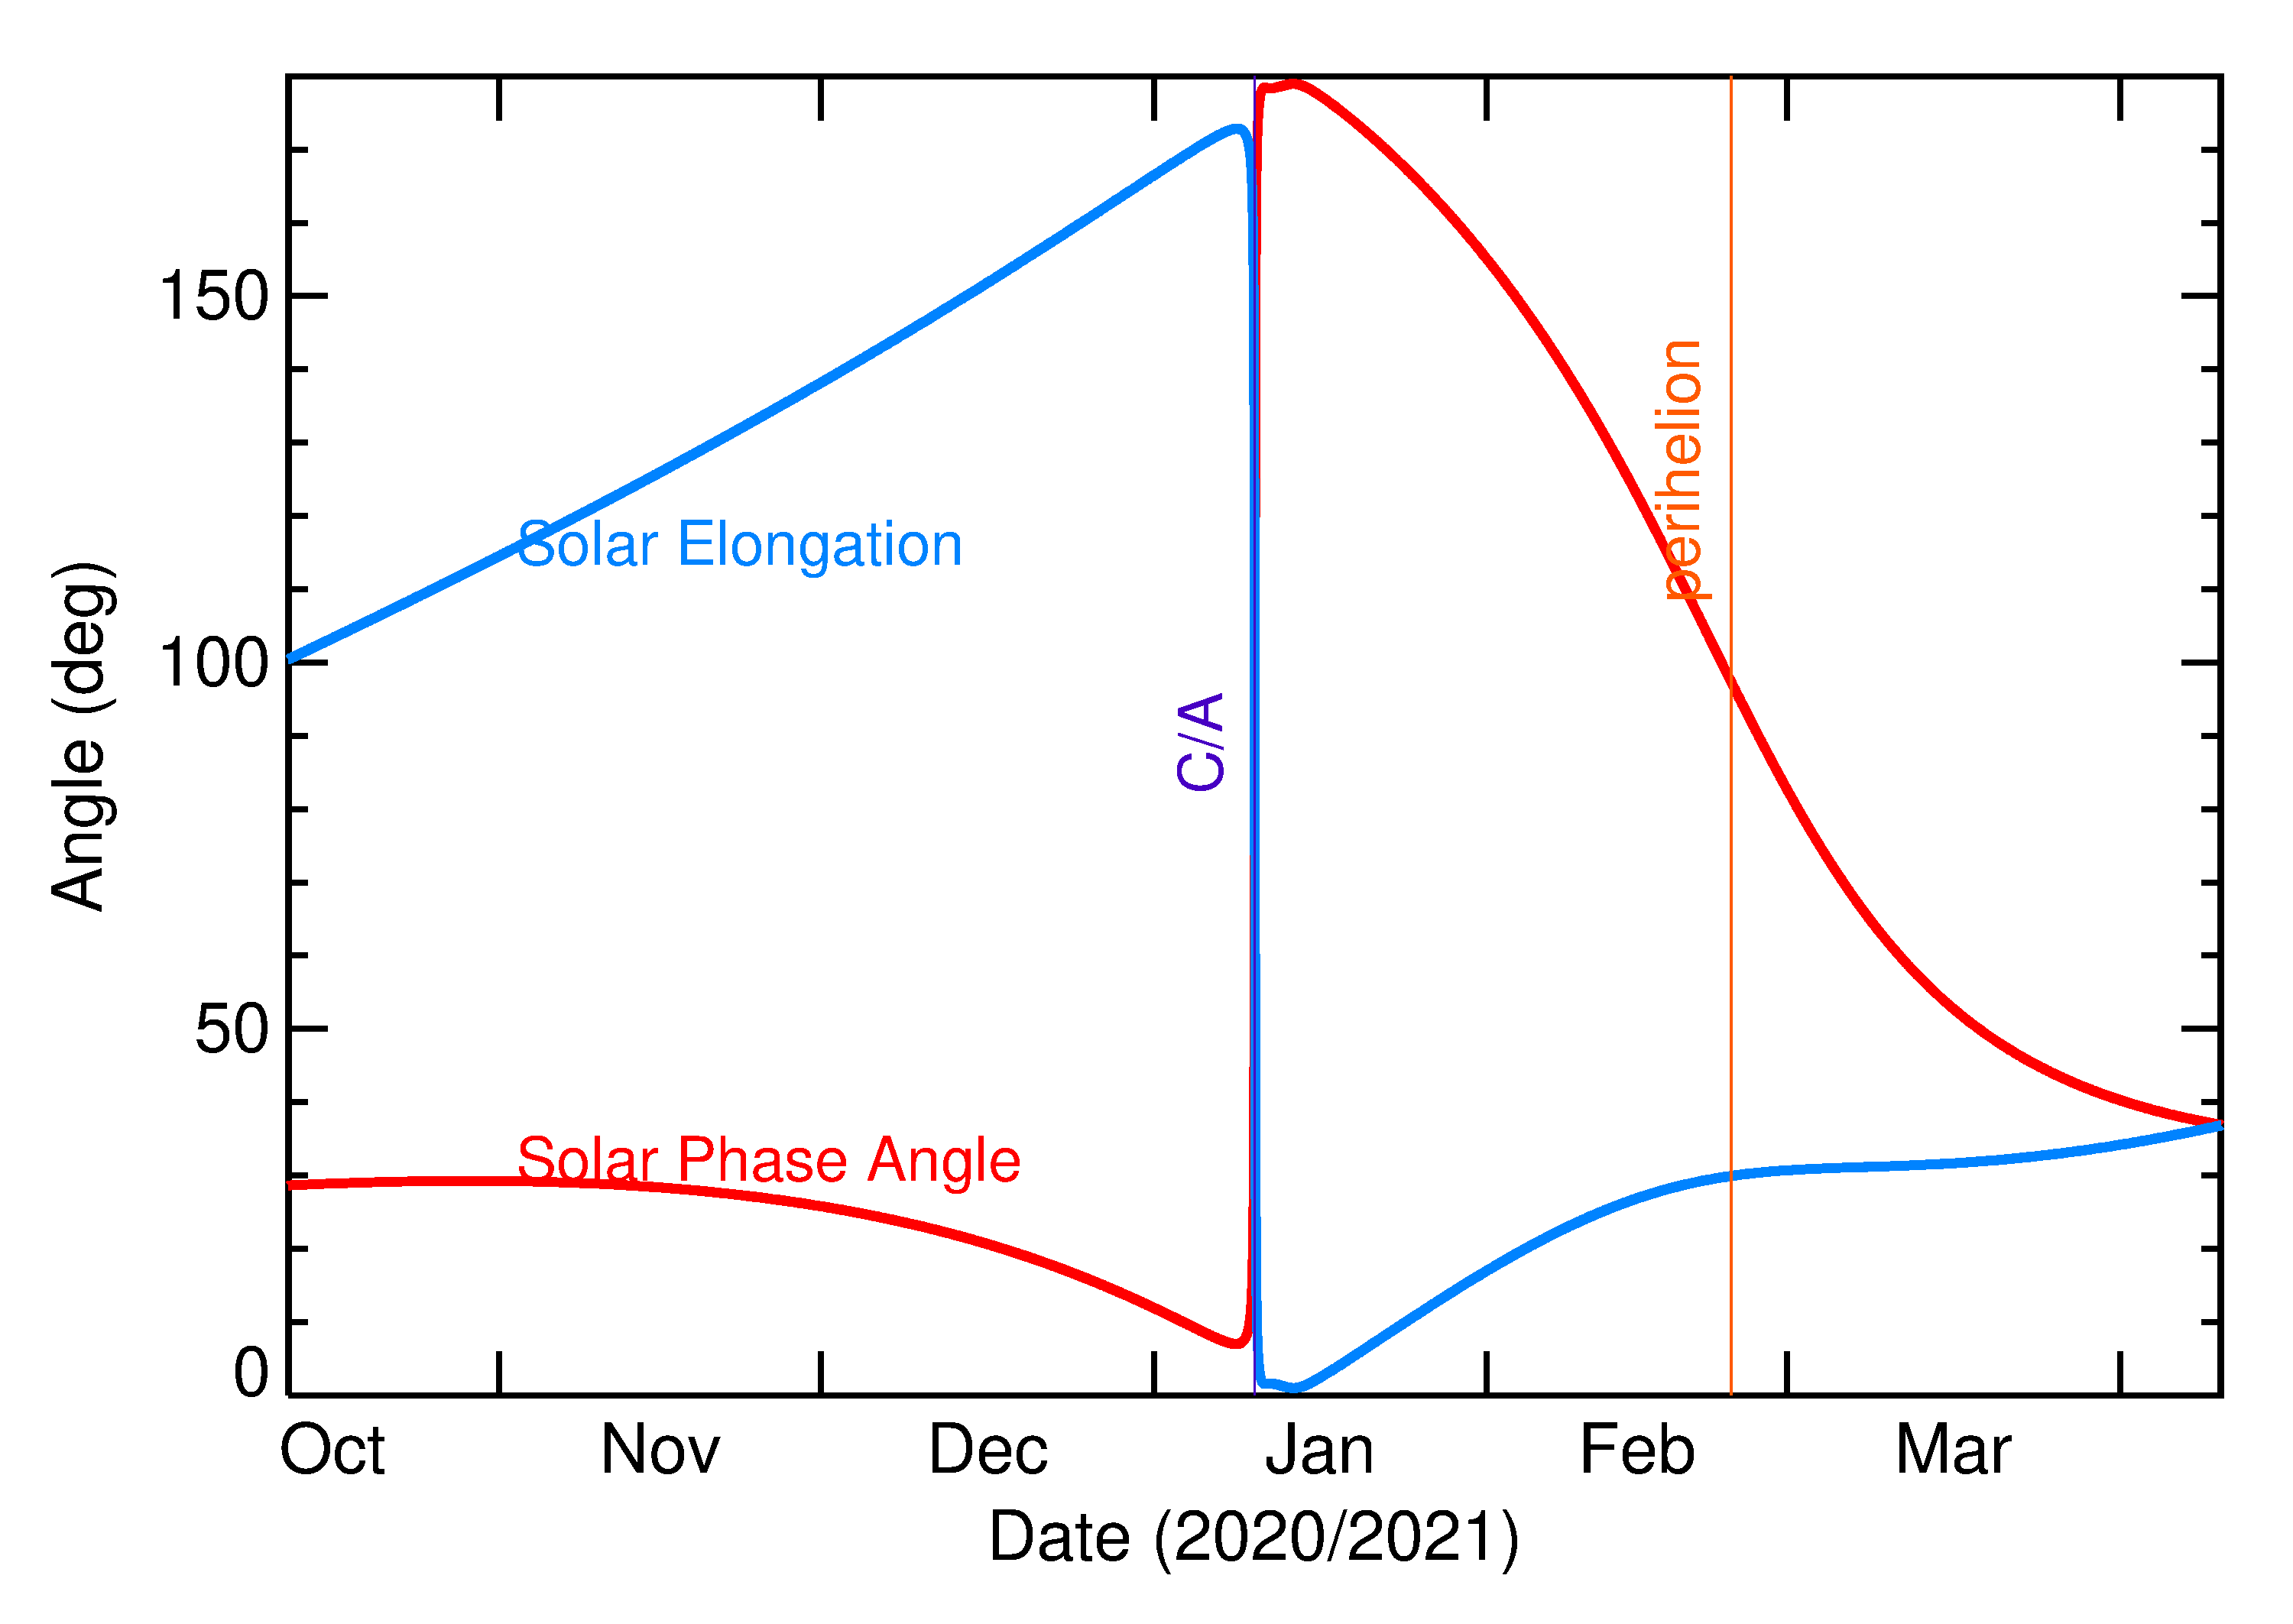 Solar Elongation and Solar Phase Angle of 2021 AS2 in the months around closest approach